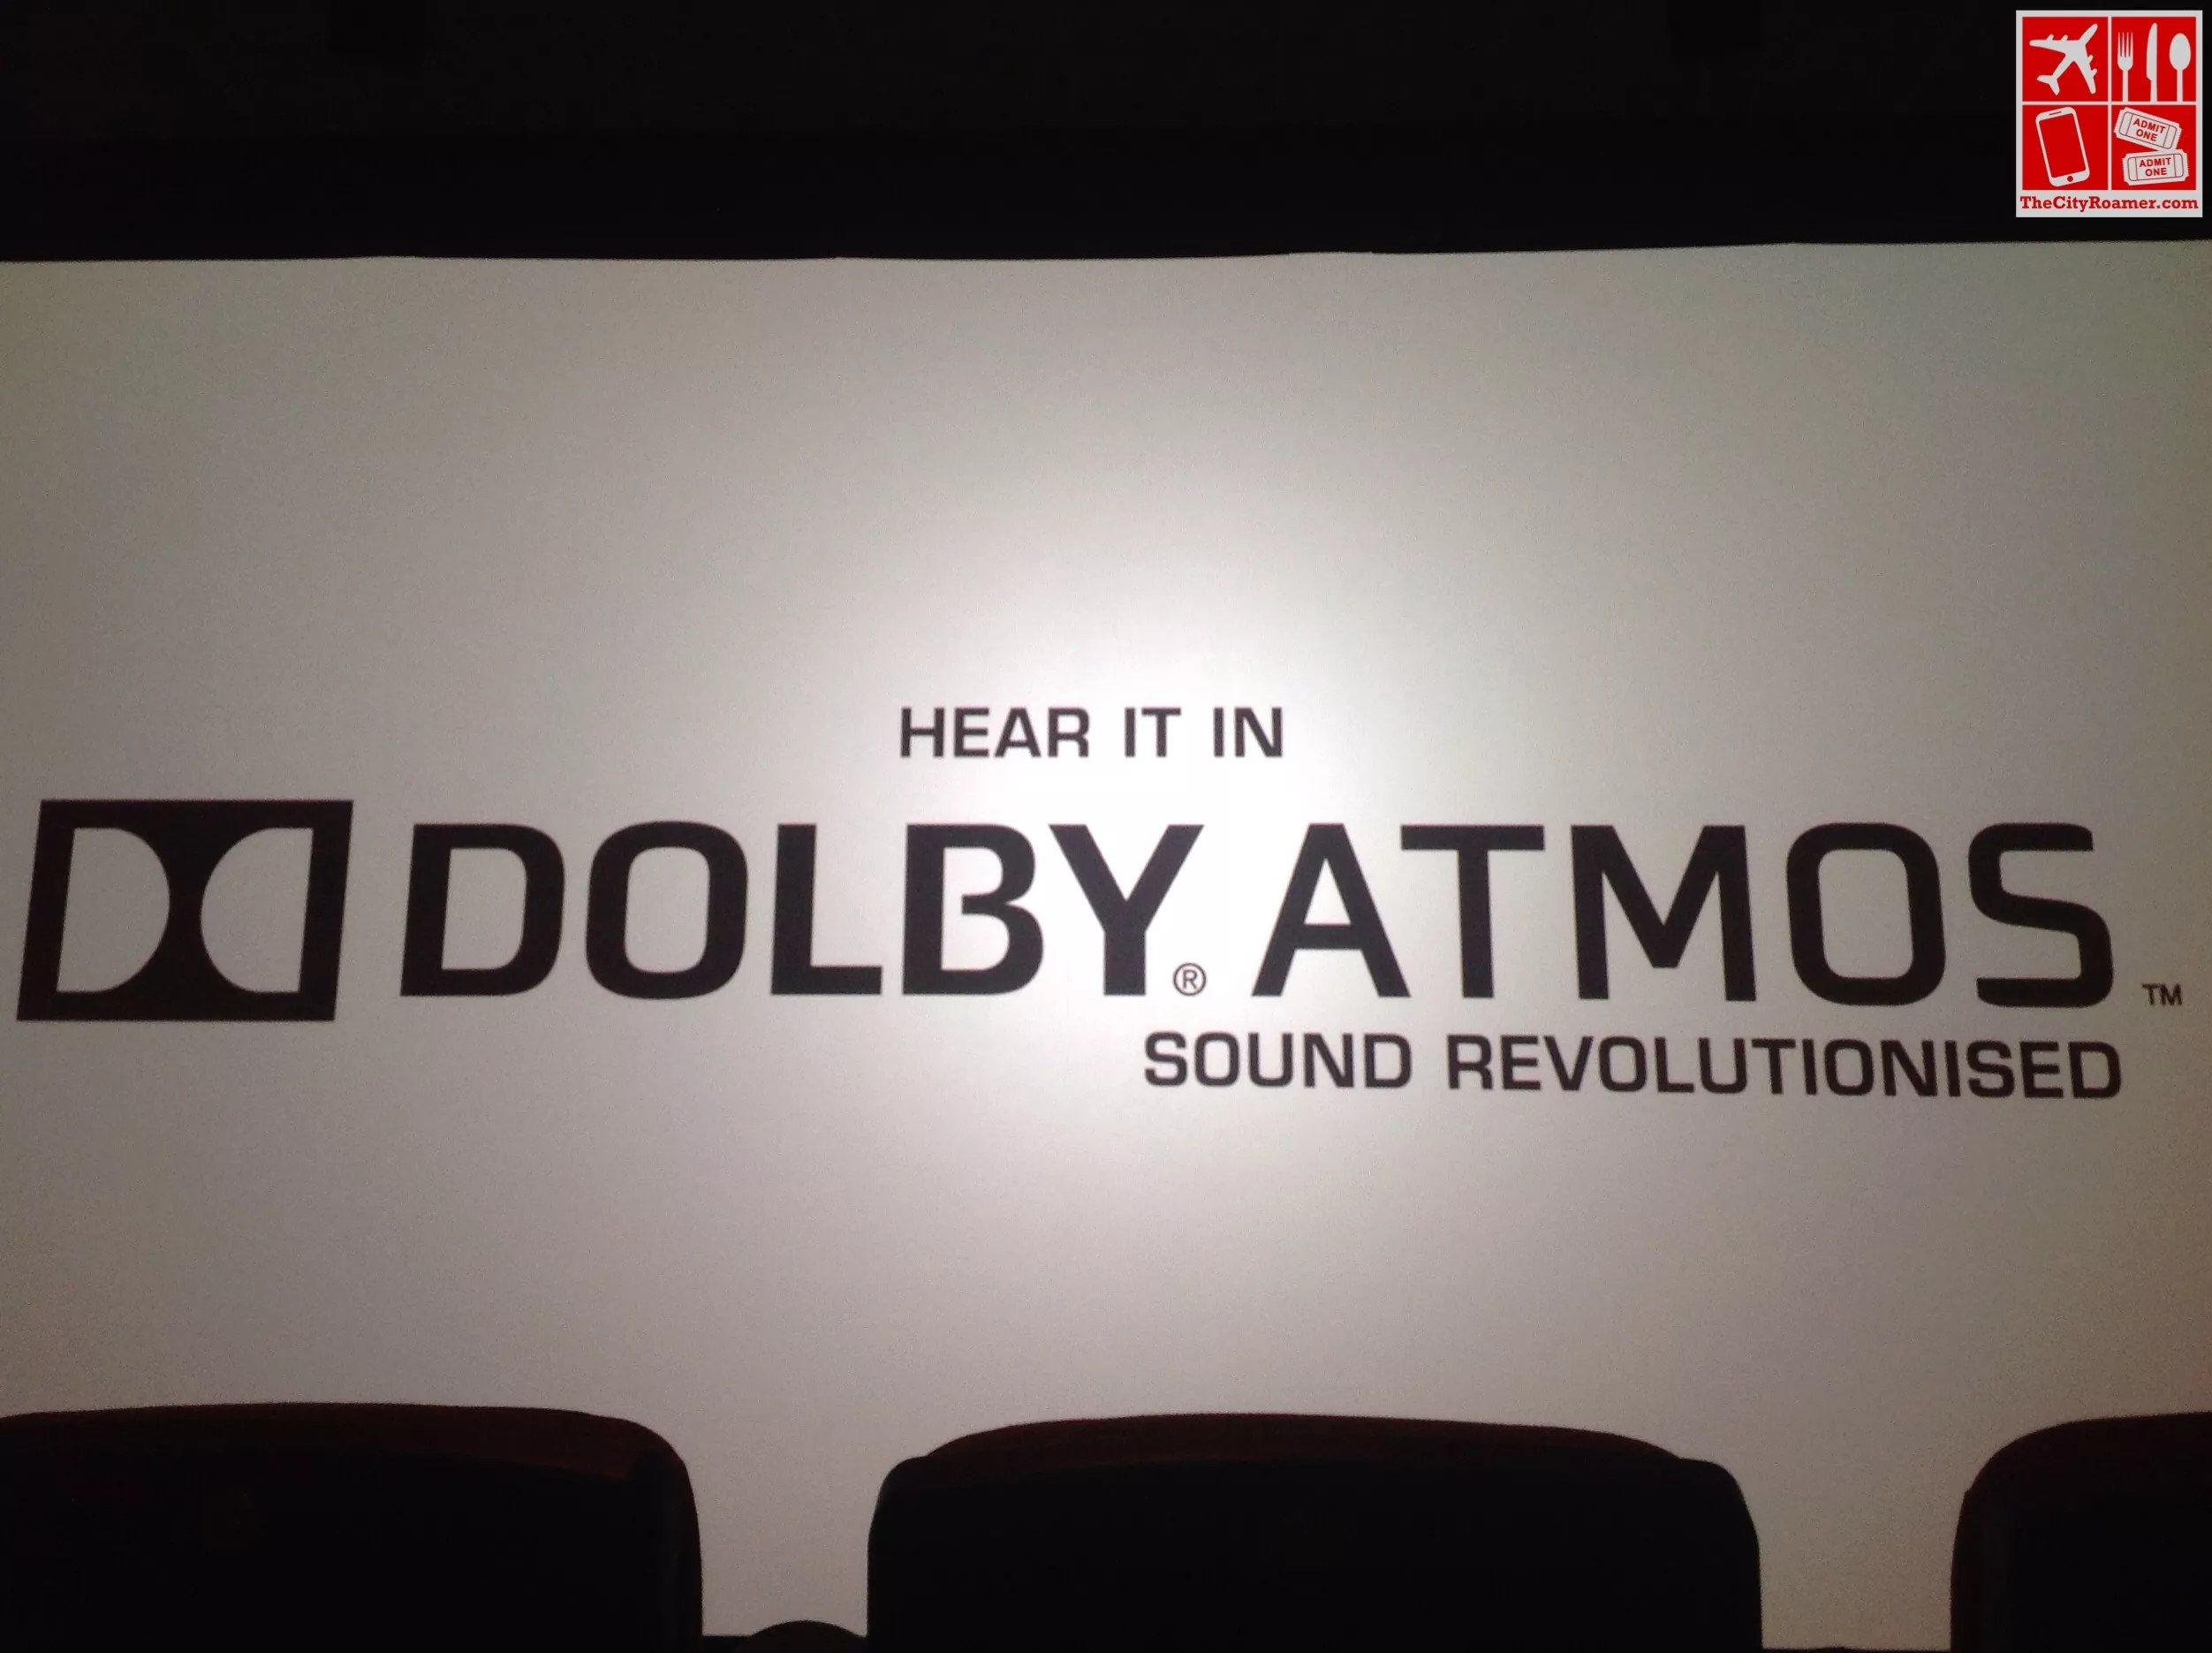 Hear the movies in Dolby Atmos